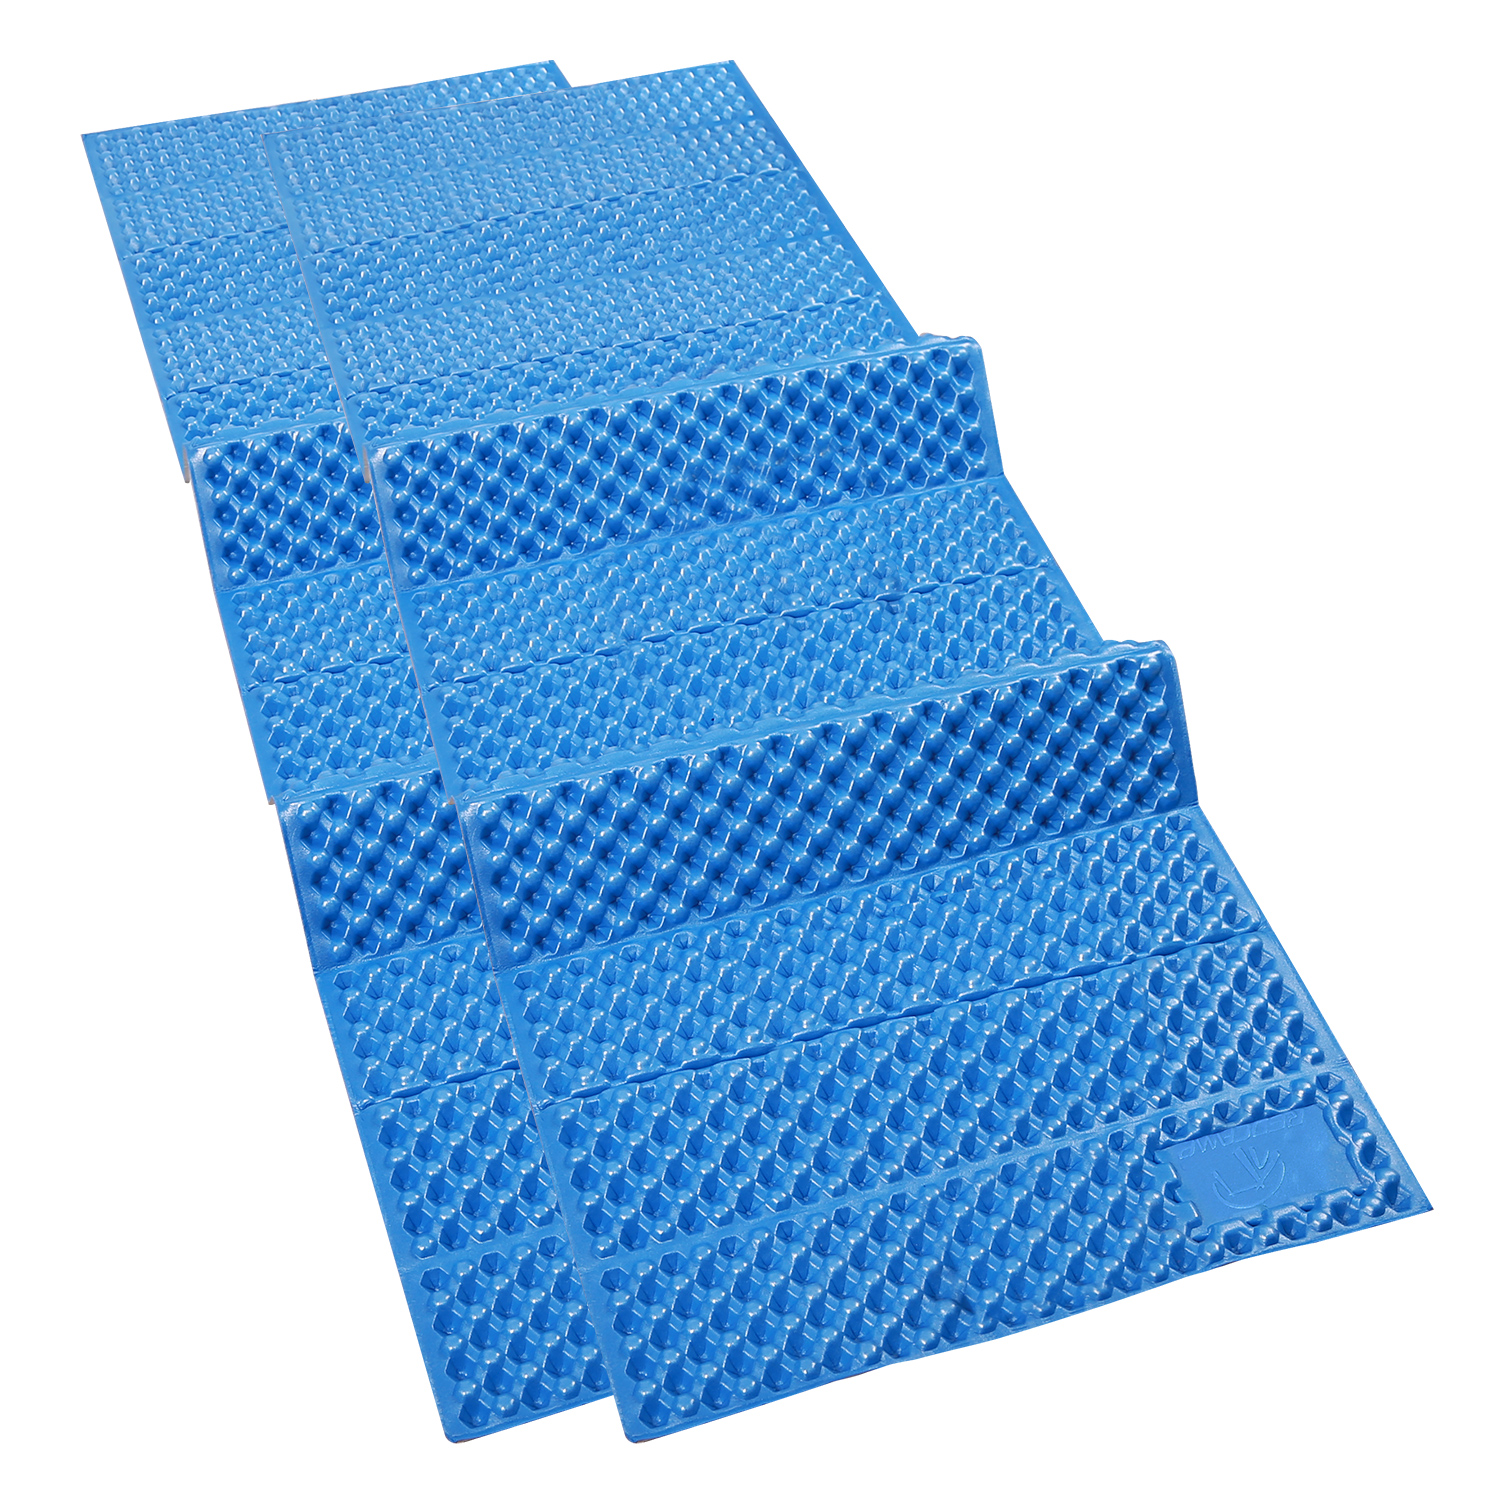 Closed Cell Foam Mat Redcamp Foam Sleeping Pad For Camping Set Of 2 2 Packs Closed Cell Foam Sleeping Mats For Camping Backpacking Hiking Silvery Blue 72